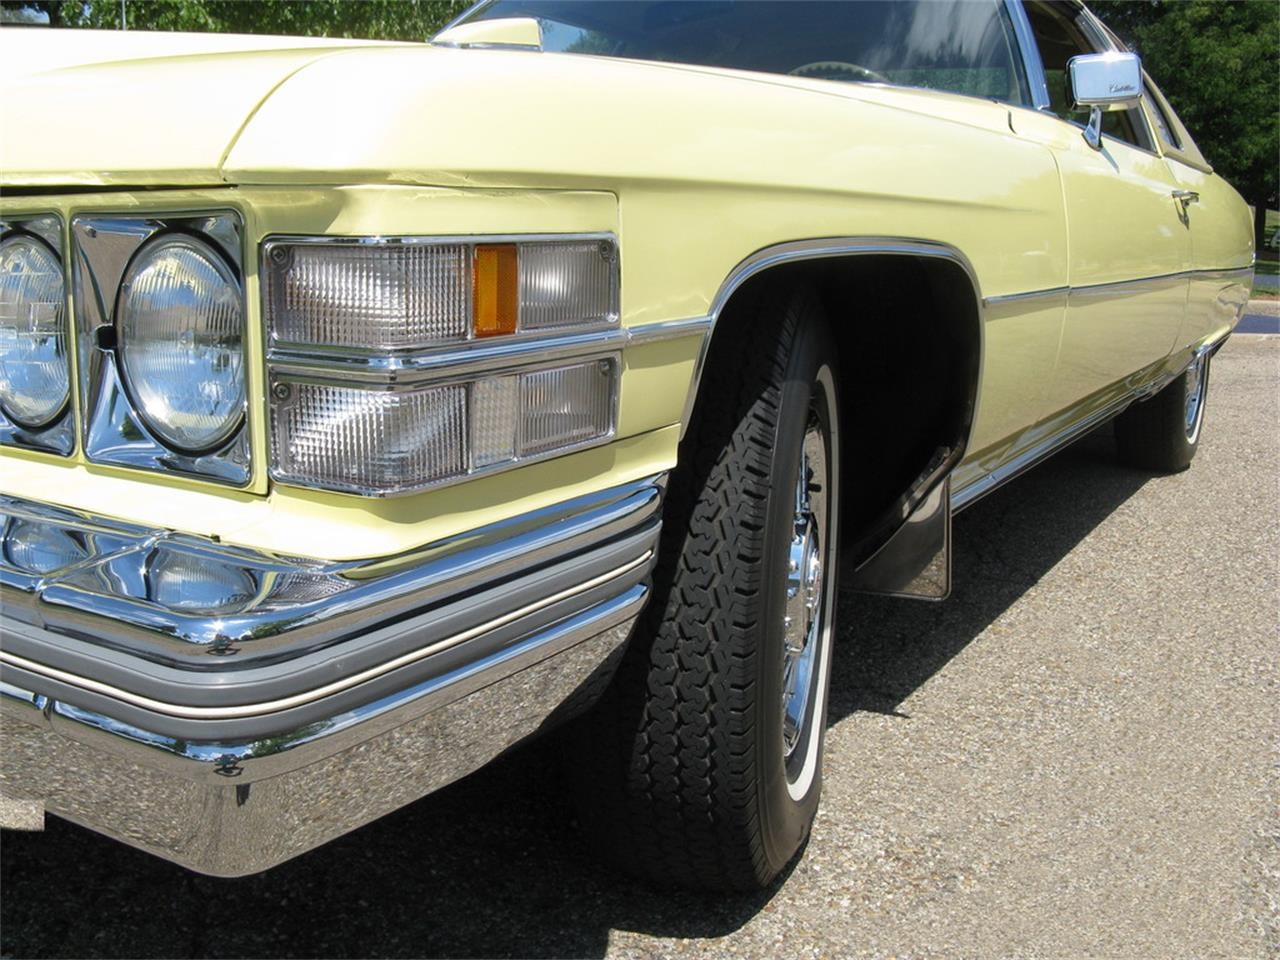 Large Picture of '74 Cadillac Coupe DeVille located in Ohio - $13,500.00 Offered by Affordable Classic Motorcars - J3ZZ